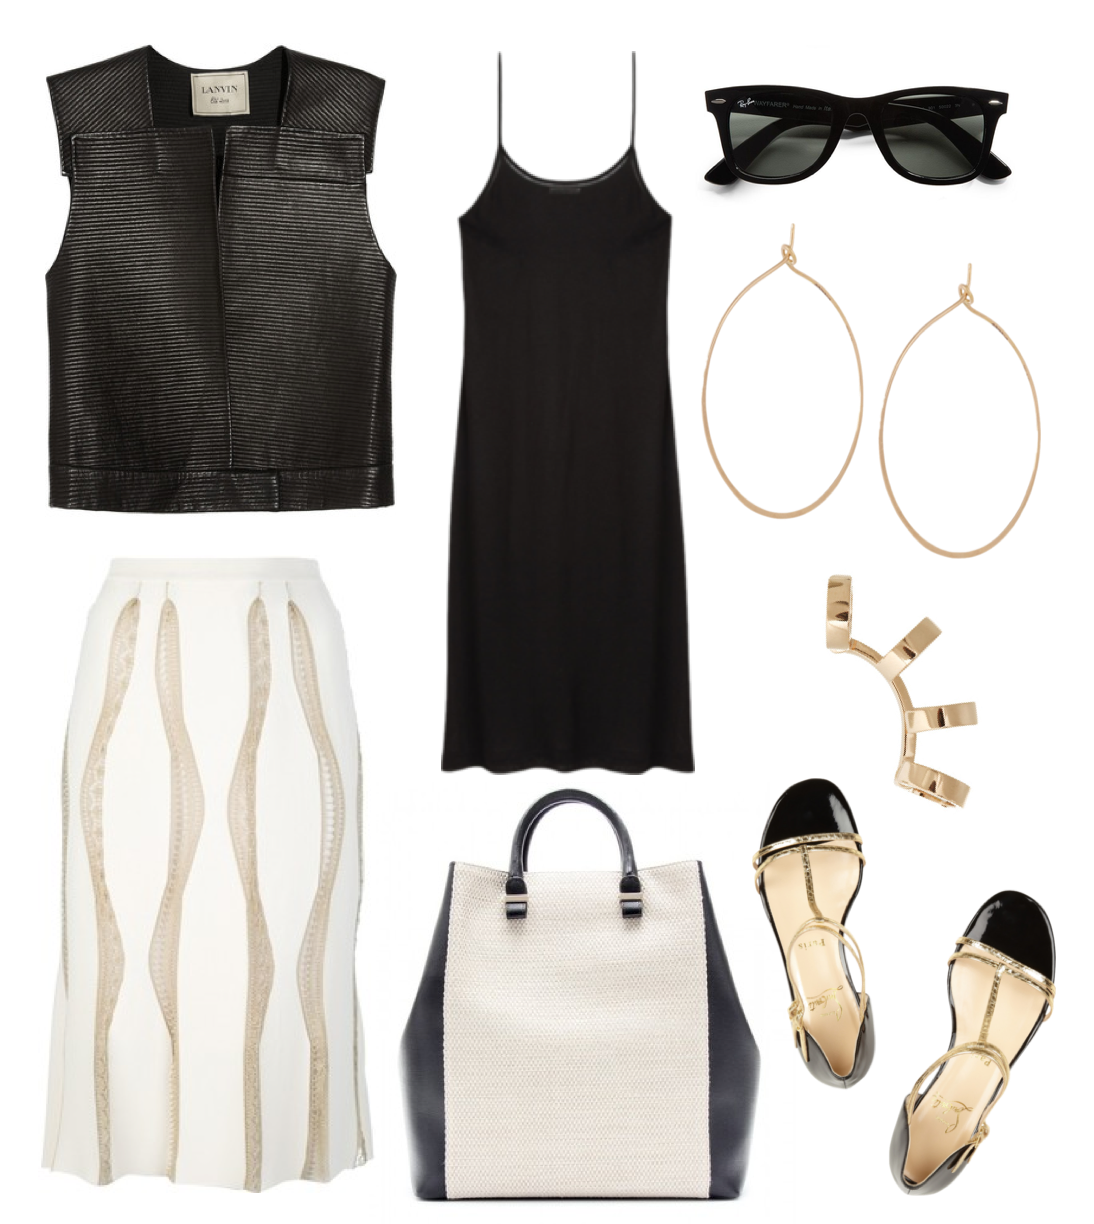 Wish outfit - Lanin leather vest, Blumarine skirt, Acne tank top, Victoria Beckham bag, Christian Louboutin sandals, Repossi earring, Ray-Ban Wayfarer and Brook Gregson